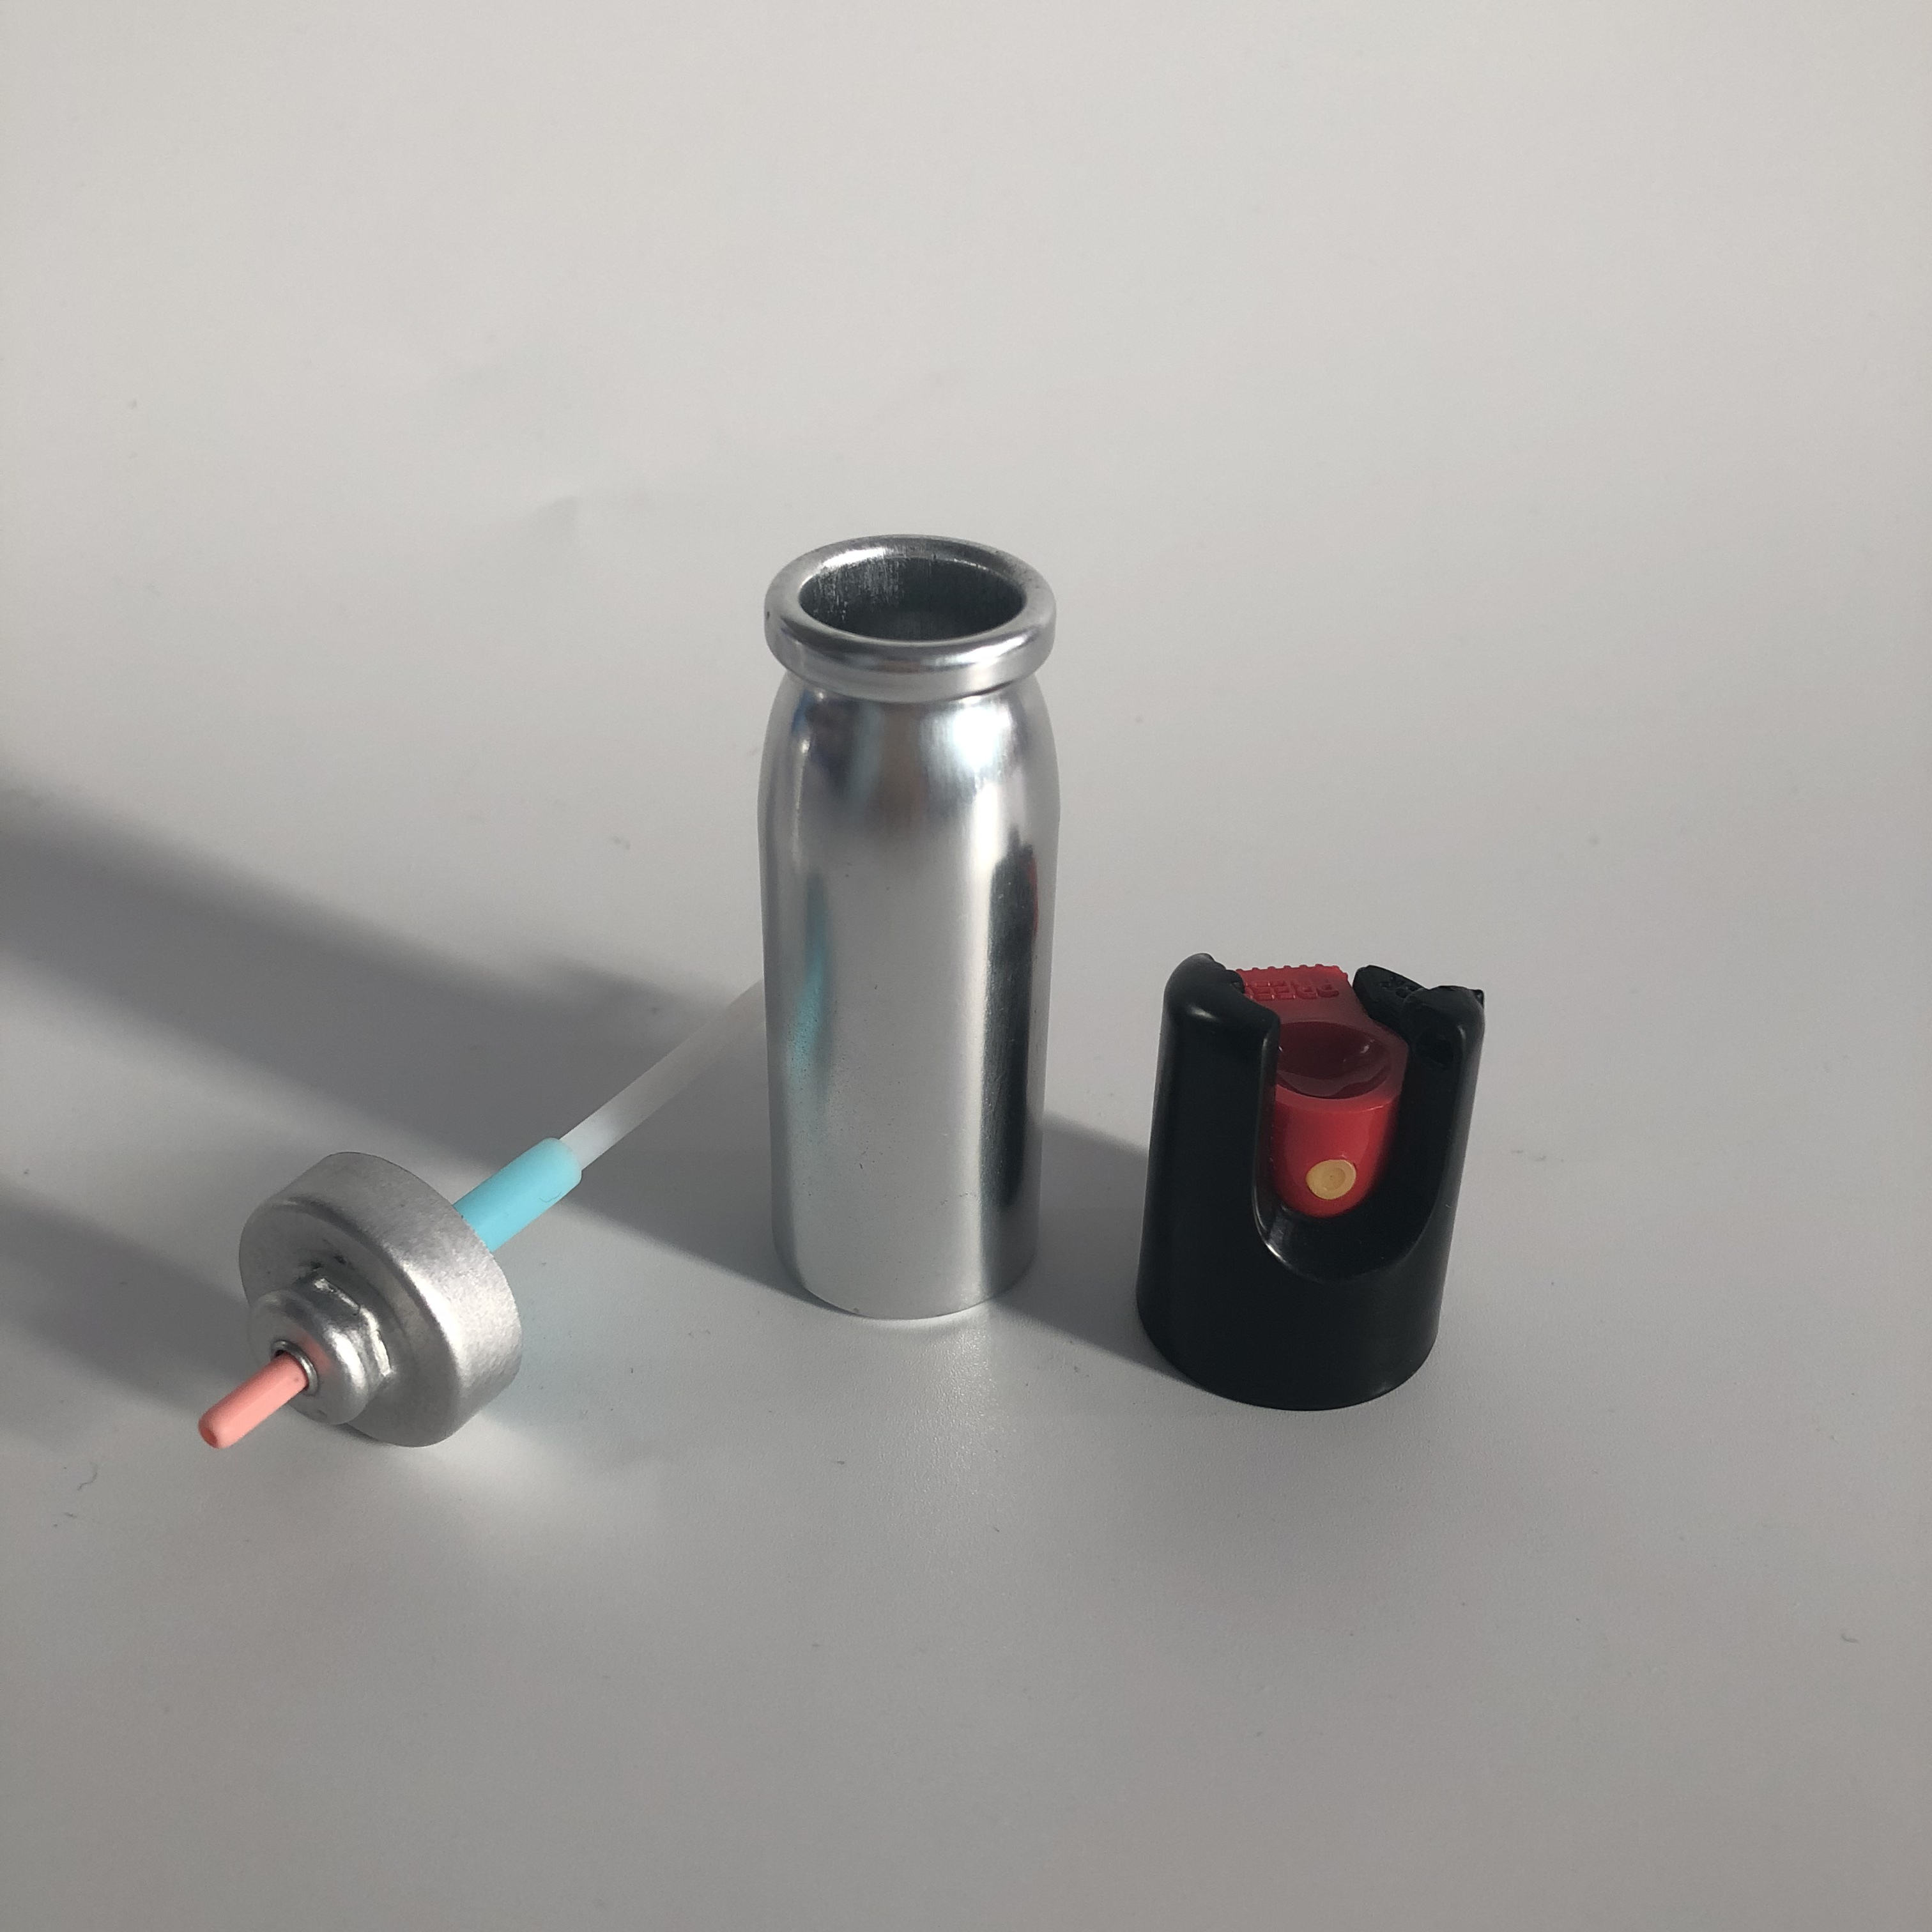 2021 Hot Sale Empty Aluminum Aerosol Can with Valve and Actuator for Pepper spray